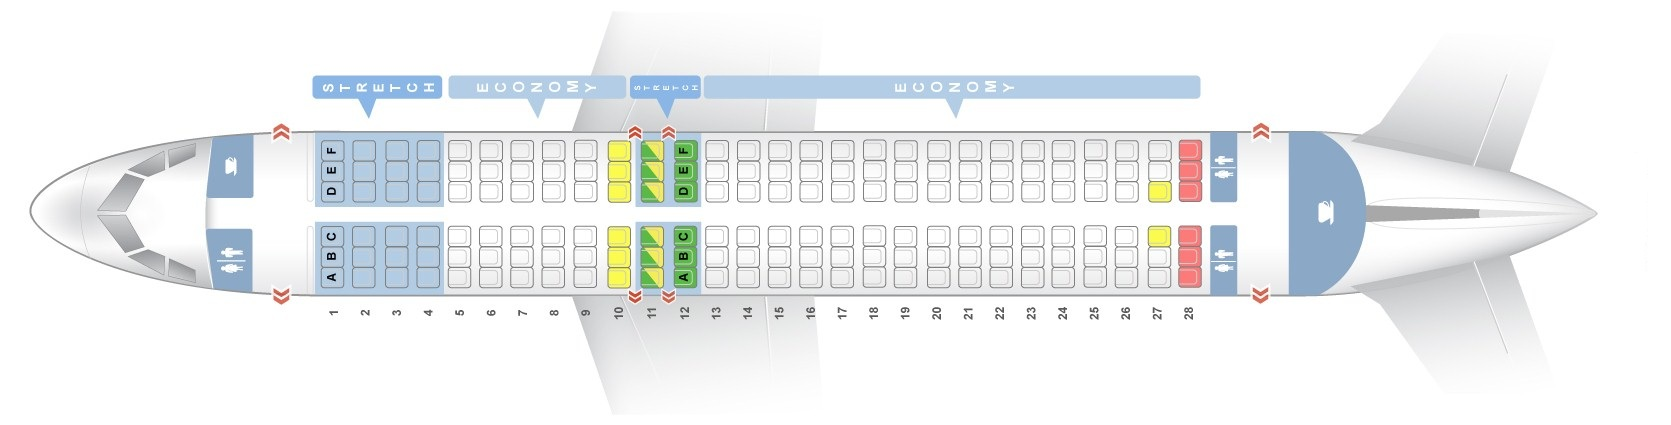 seat map airbus a320neo frontier airlines best seats in the plane